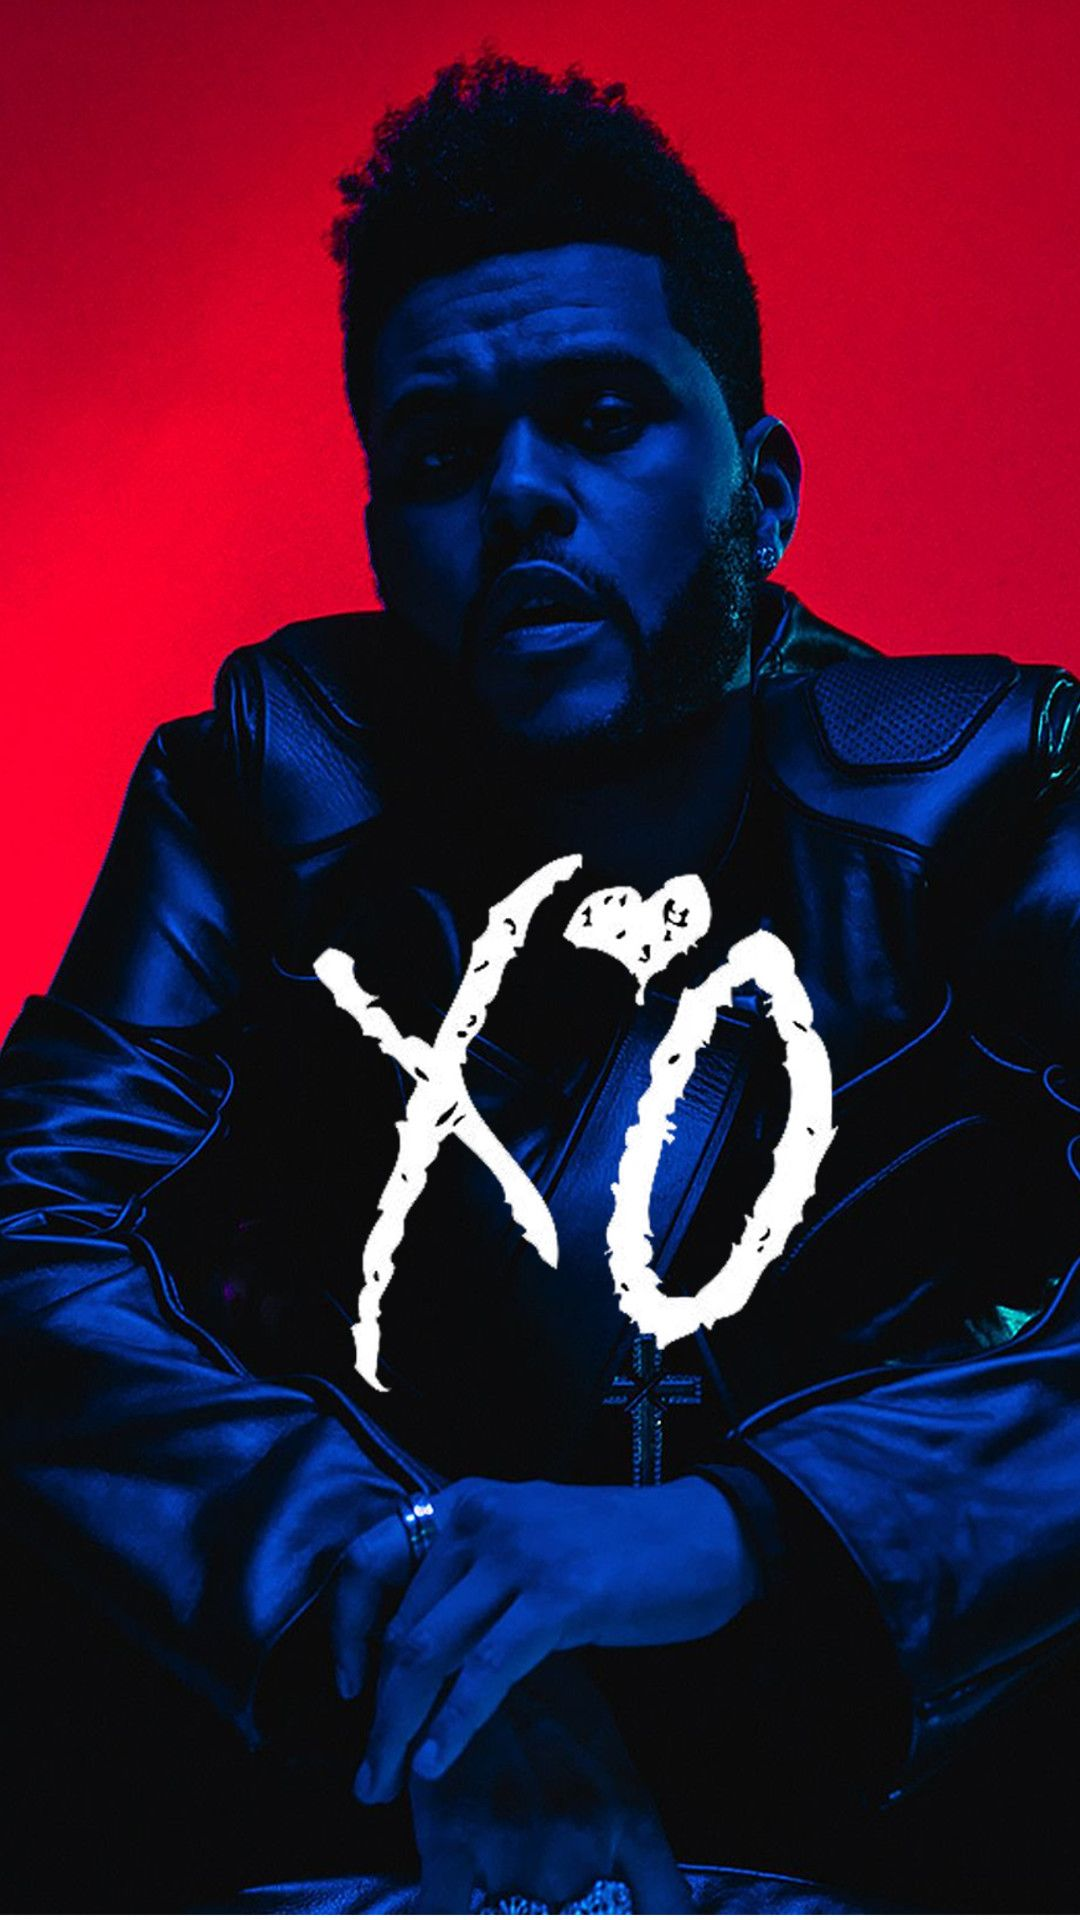 The Weeknd iPhone Wallpapers - Top Free The Weeknd iPhone ...